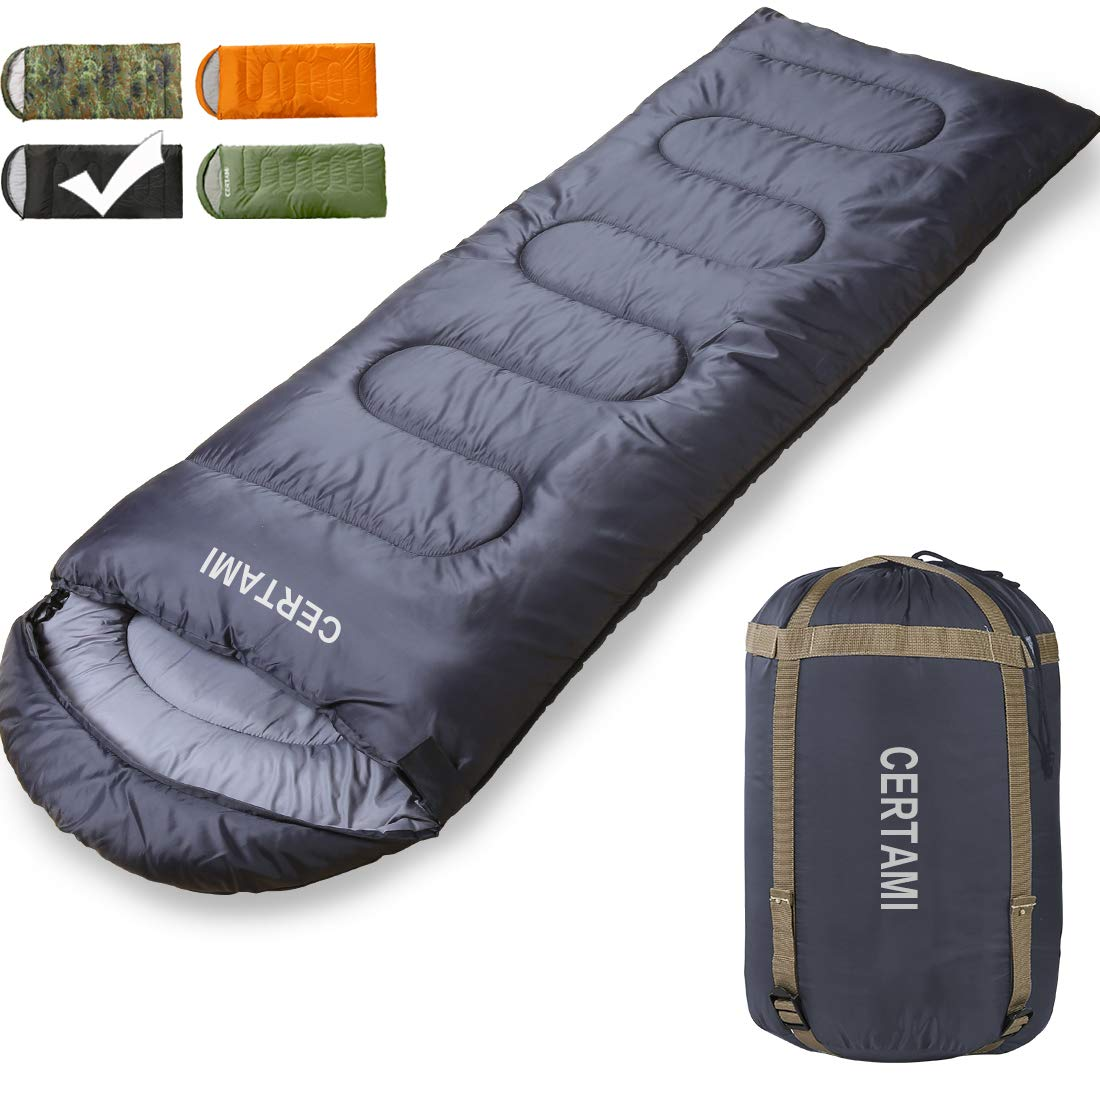 CER TAMI Sleeping Bag for Adults, Girls & Boys, Lightweight Waterproof Compact, Great for 4 Season Warm & Cold Weather, Perfect for Outdoor Backpacking, Camping, Hiking. (Dark Grey/Left Zip) by CER TAMI